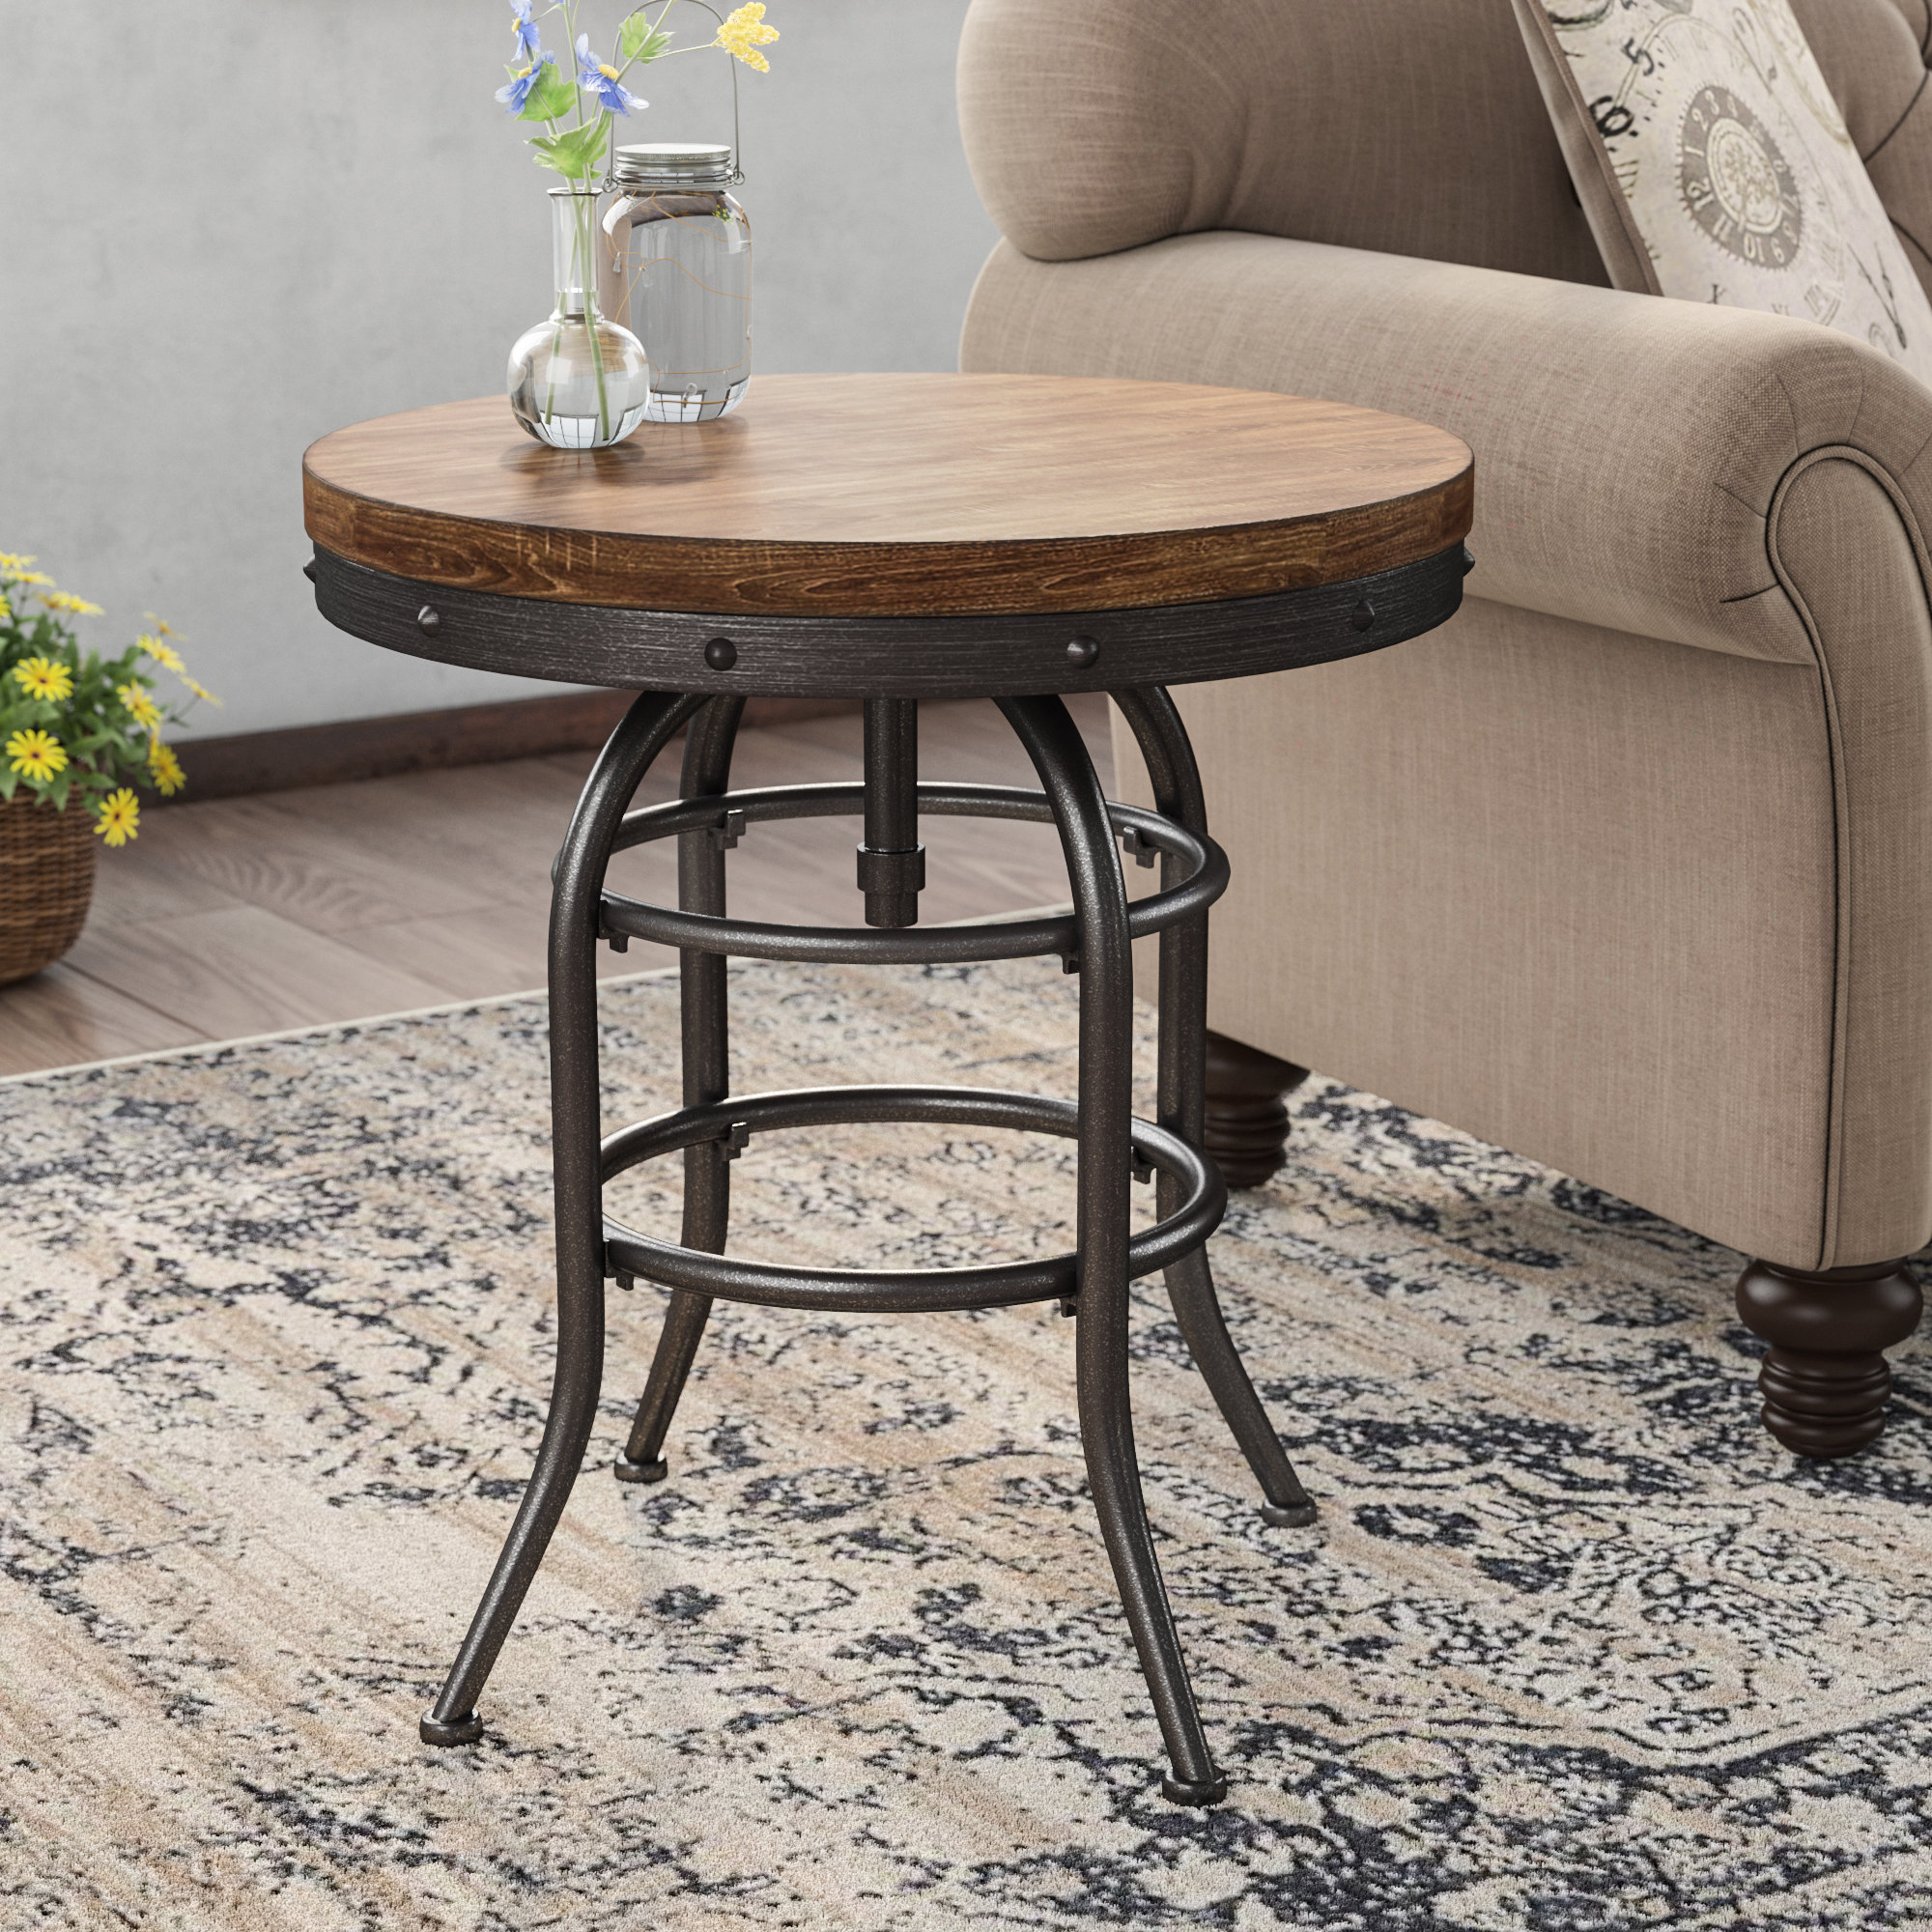 laurel foundry modern farmhouse likens end table reviews accent linen company threshold mango wood ashley chairs mission style coffee plans half console kitchen island wheels